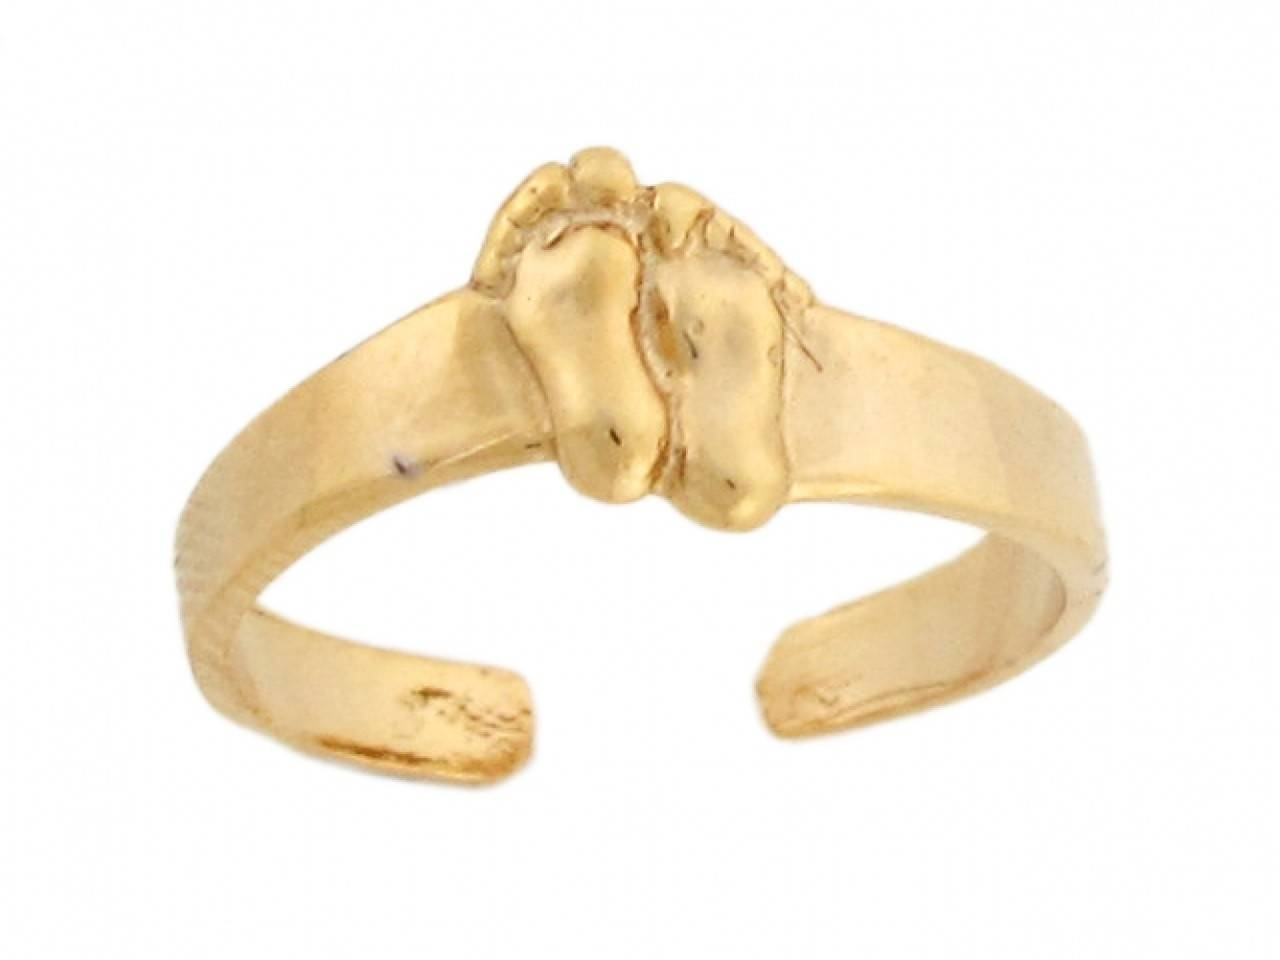 31 Most Wanted Stunning Gold Toe Rings For Women | Eternity Jewelry In Most Recently Released 10k Gold Toe Rings (View 3 of 25)